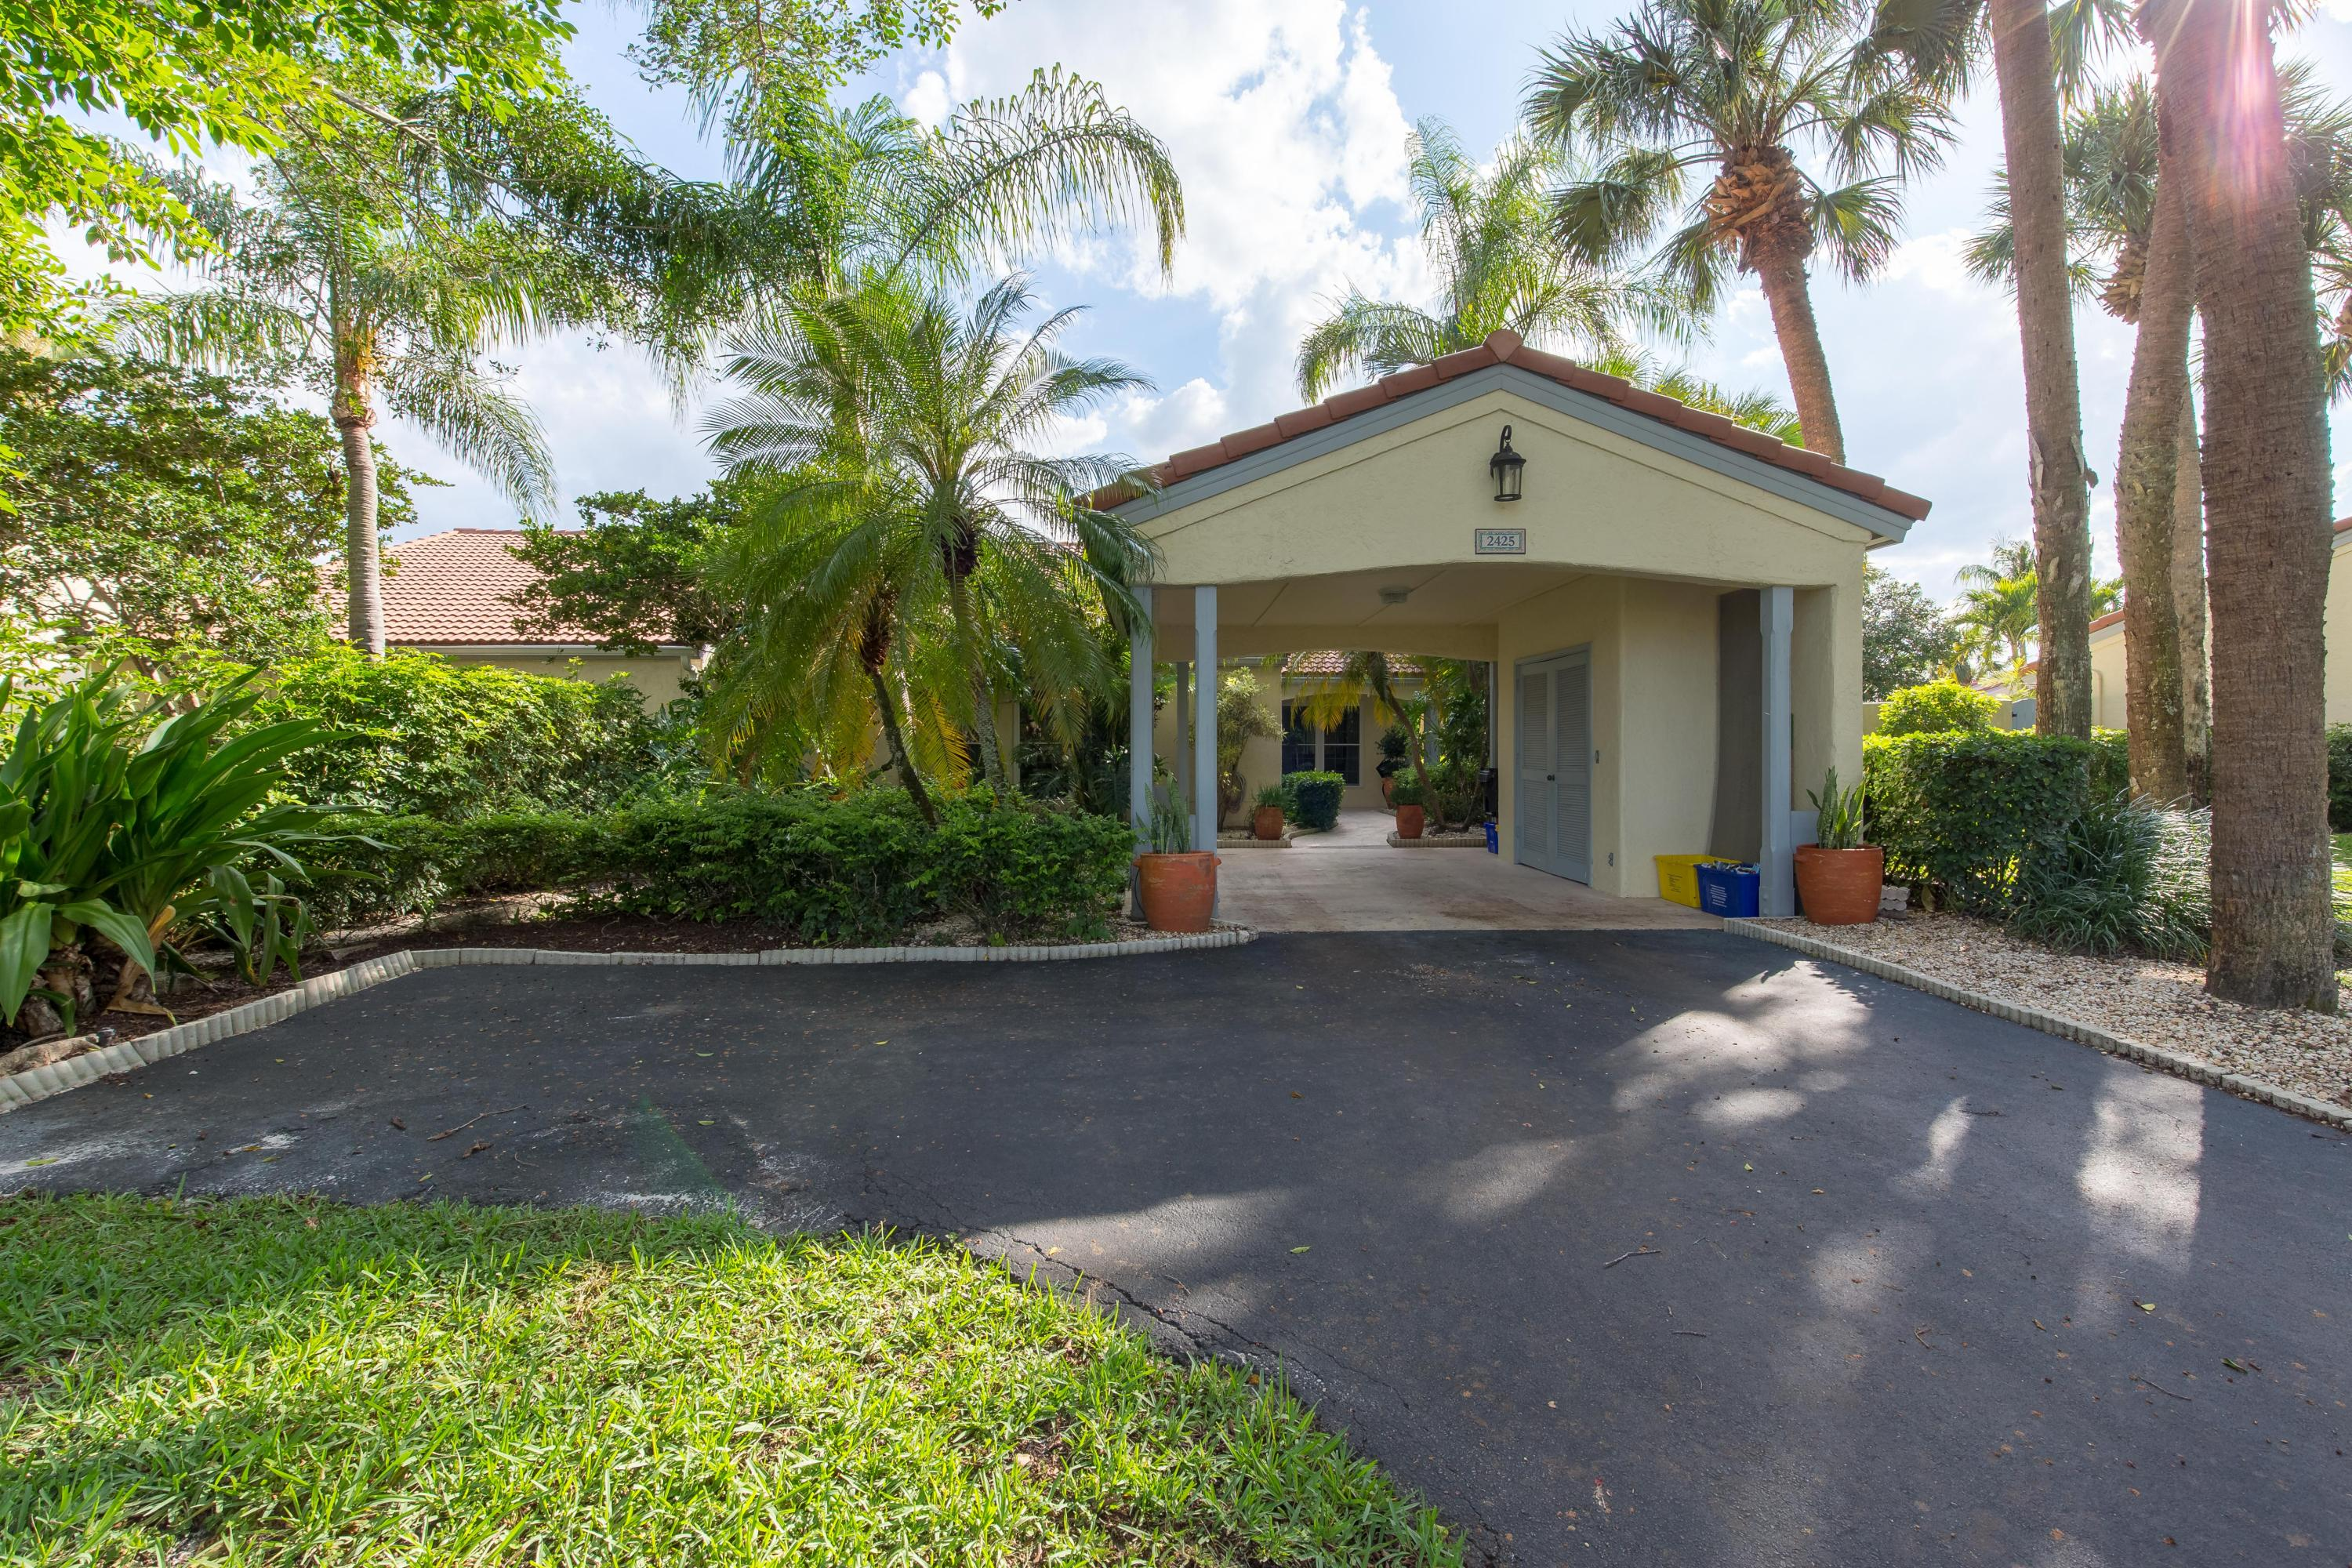 2425 Vista Del Prado Drive, Wellington, Florida 33414, 3 Bedrooms Bedrooms, ,2 BathroomsBathrooms,Villa,For Sale,Palm Beach Polo,Vista Del Prado,RX-10428095